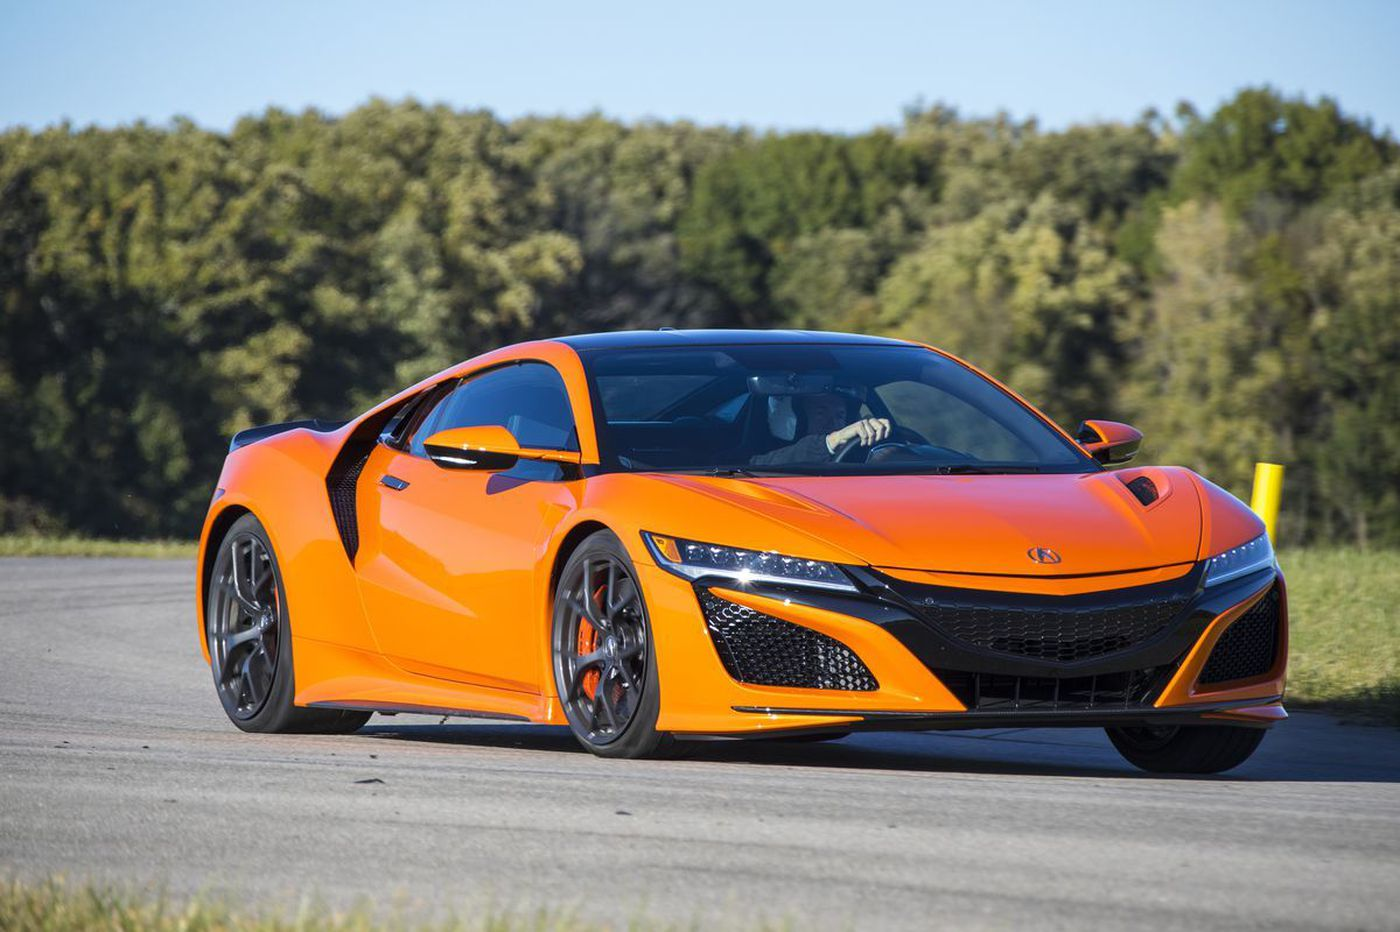 Acura NSX is built for the track, not the road